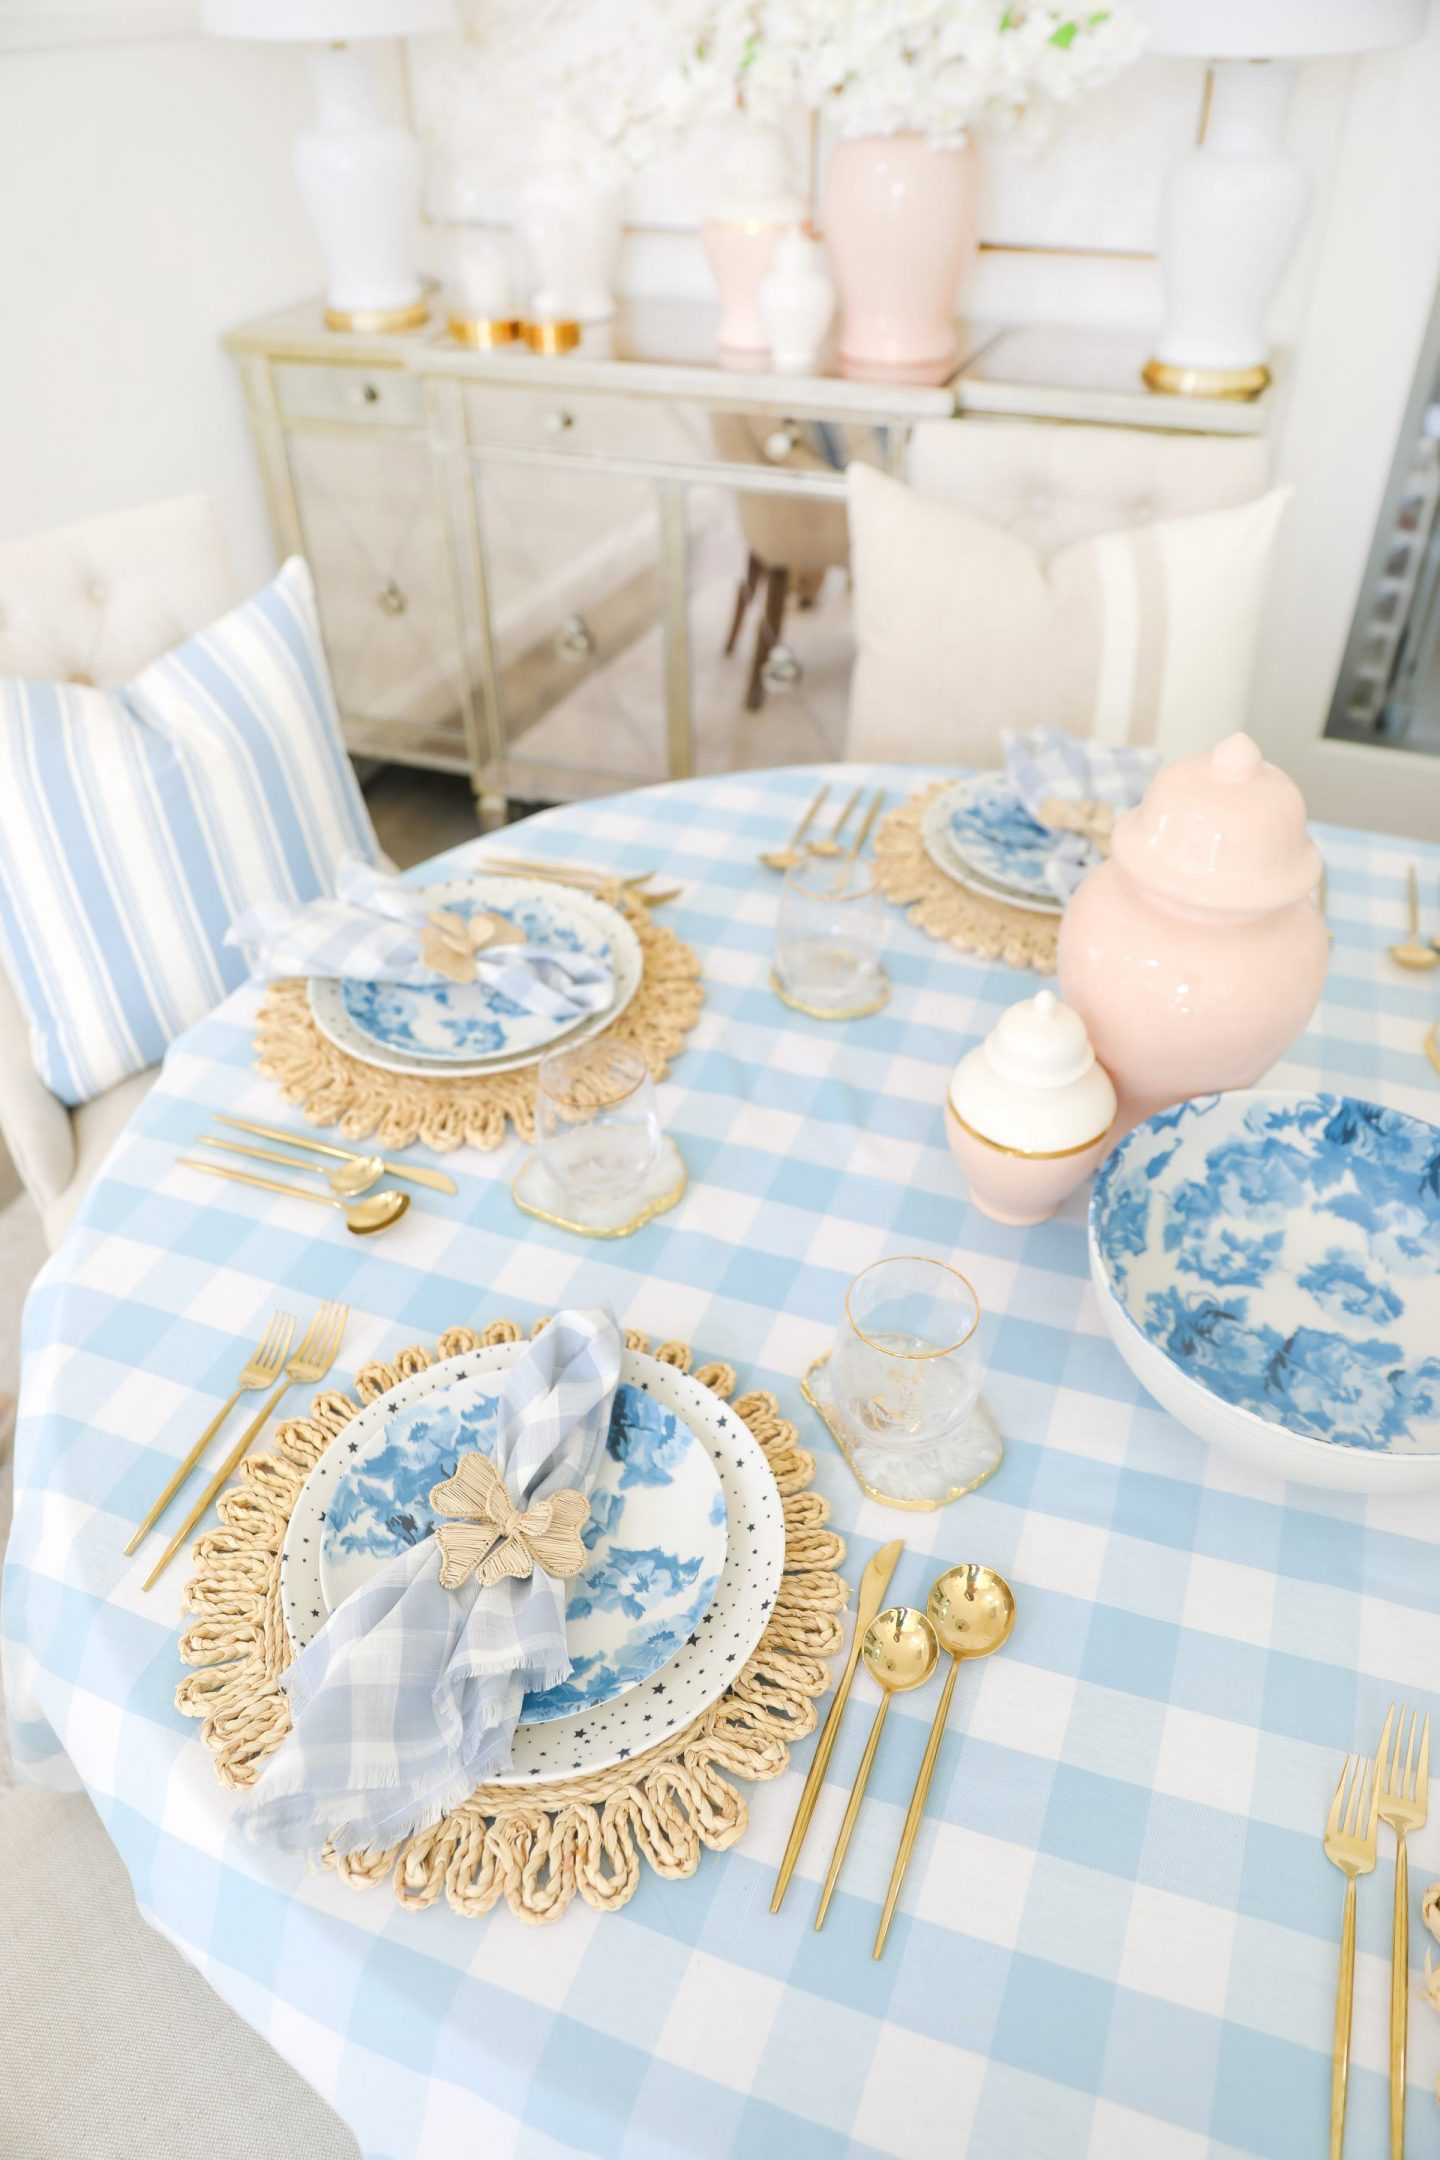 Blue and white table scape from Rachel Parcell summer home collection, by Lombard & Fifth Veronica Levy.